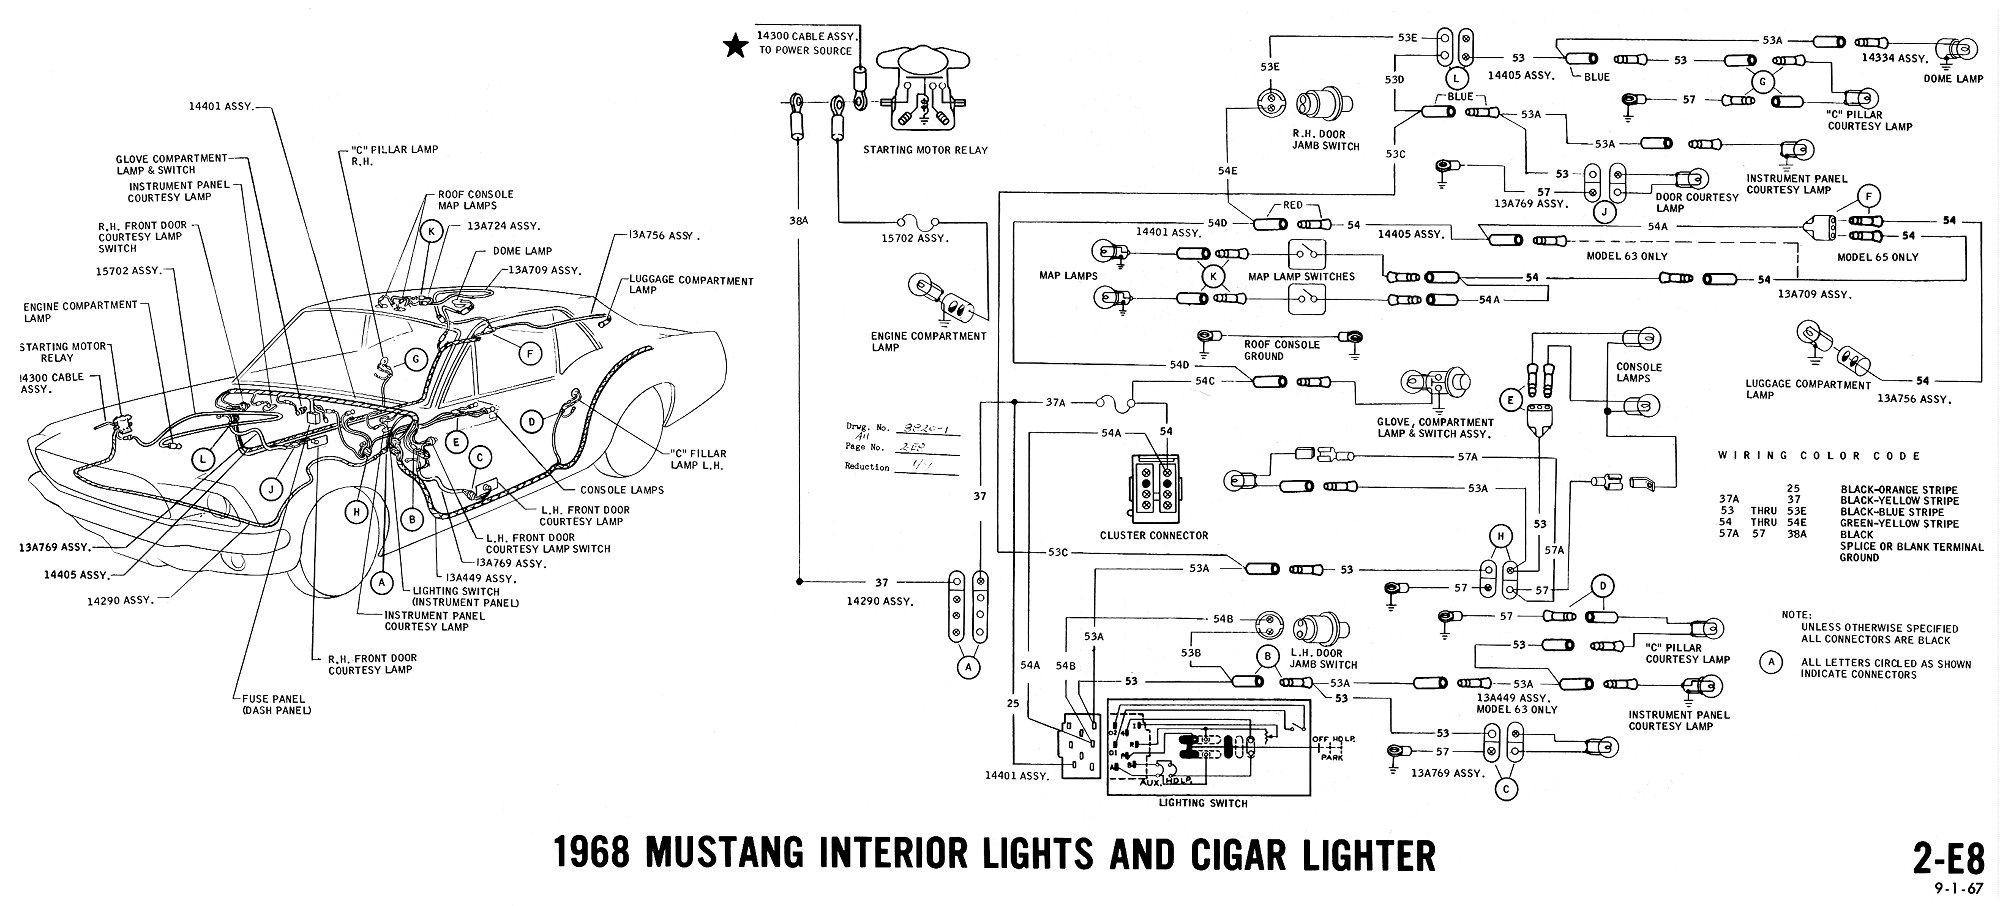 E8 1968 mustang wiring diagrams evolving software 1967 Mustang Wiring Schematic at crackthecode.co